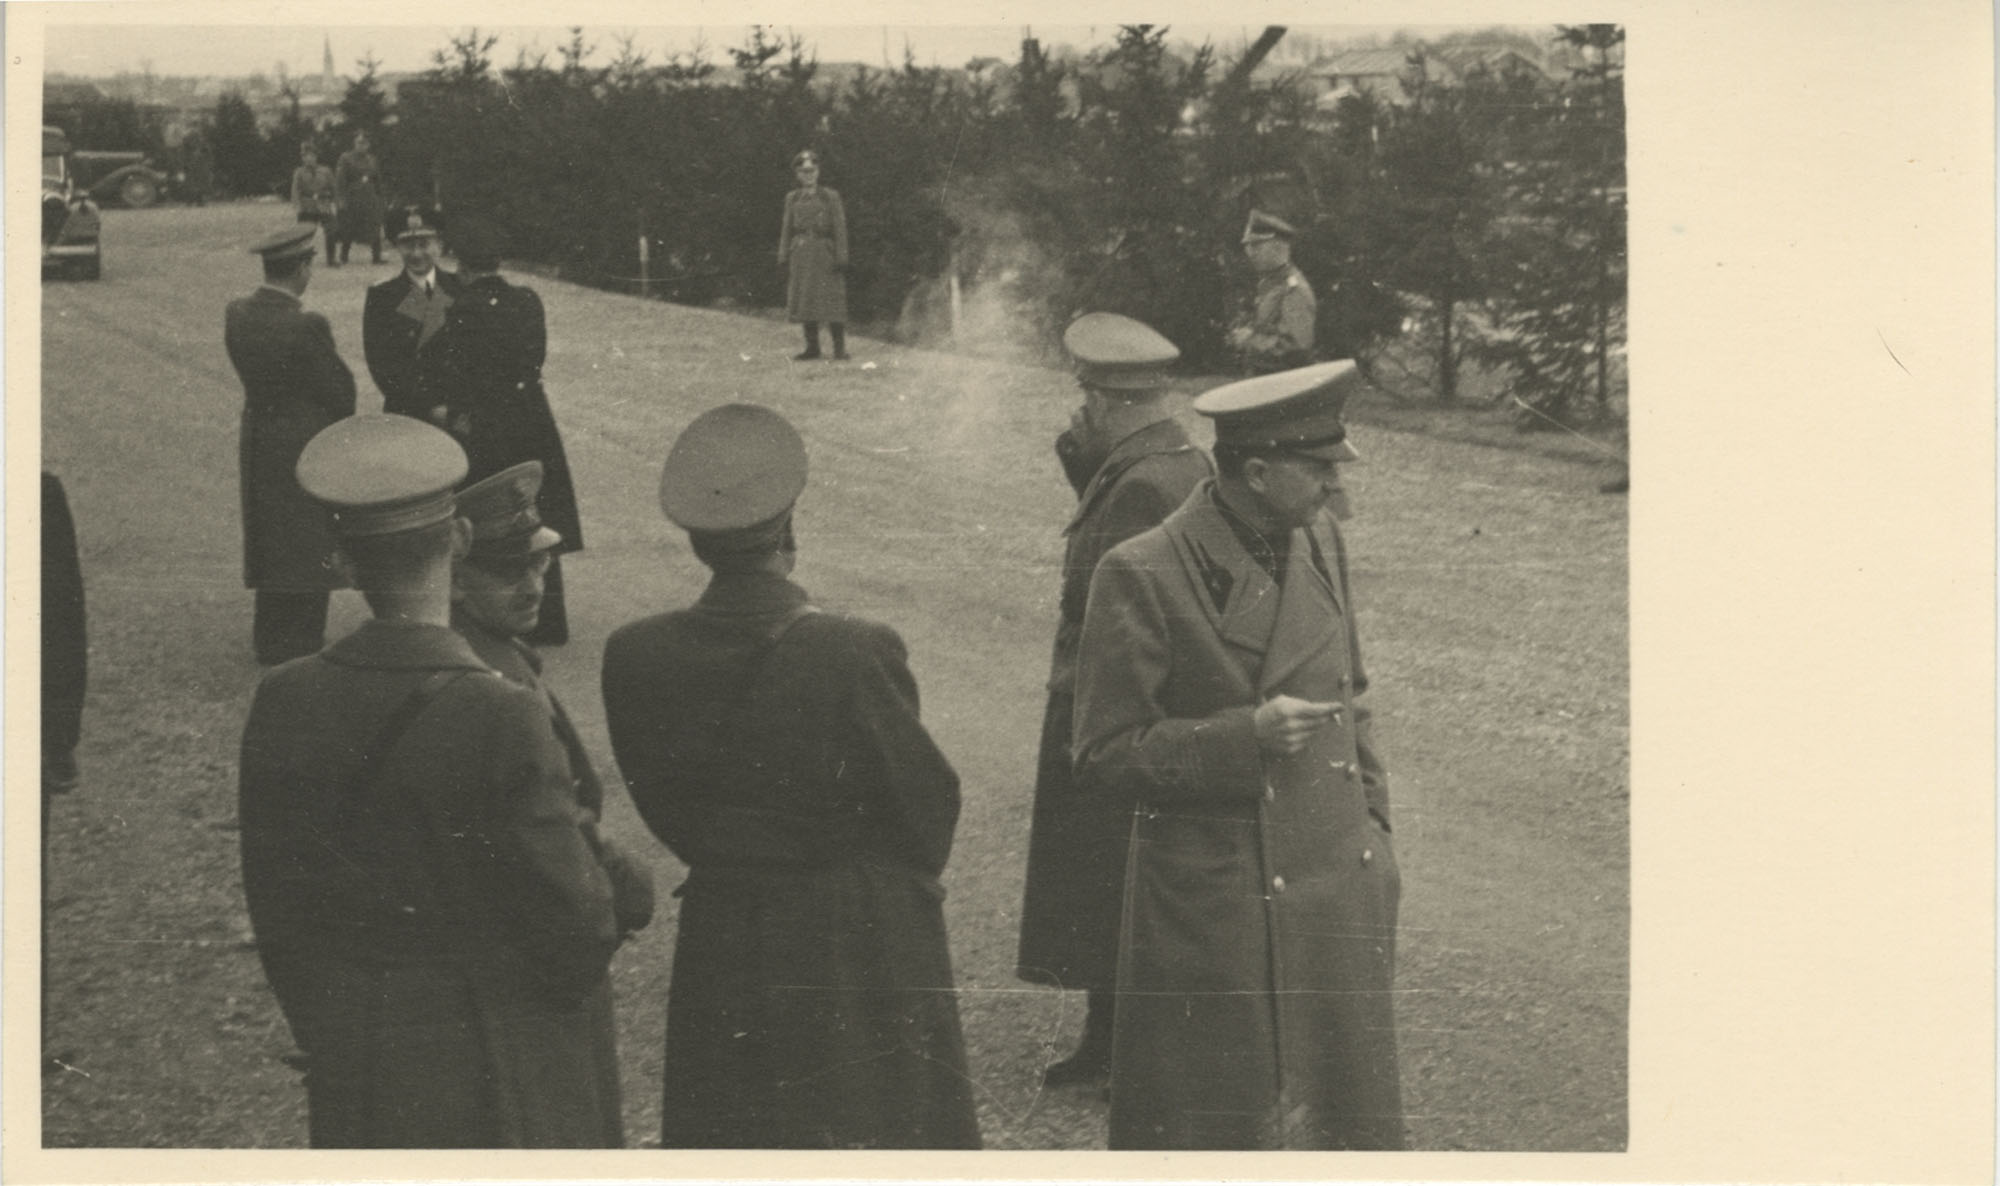 Mario Pansa greeting military personnel, Photograph 7